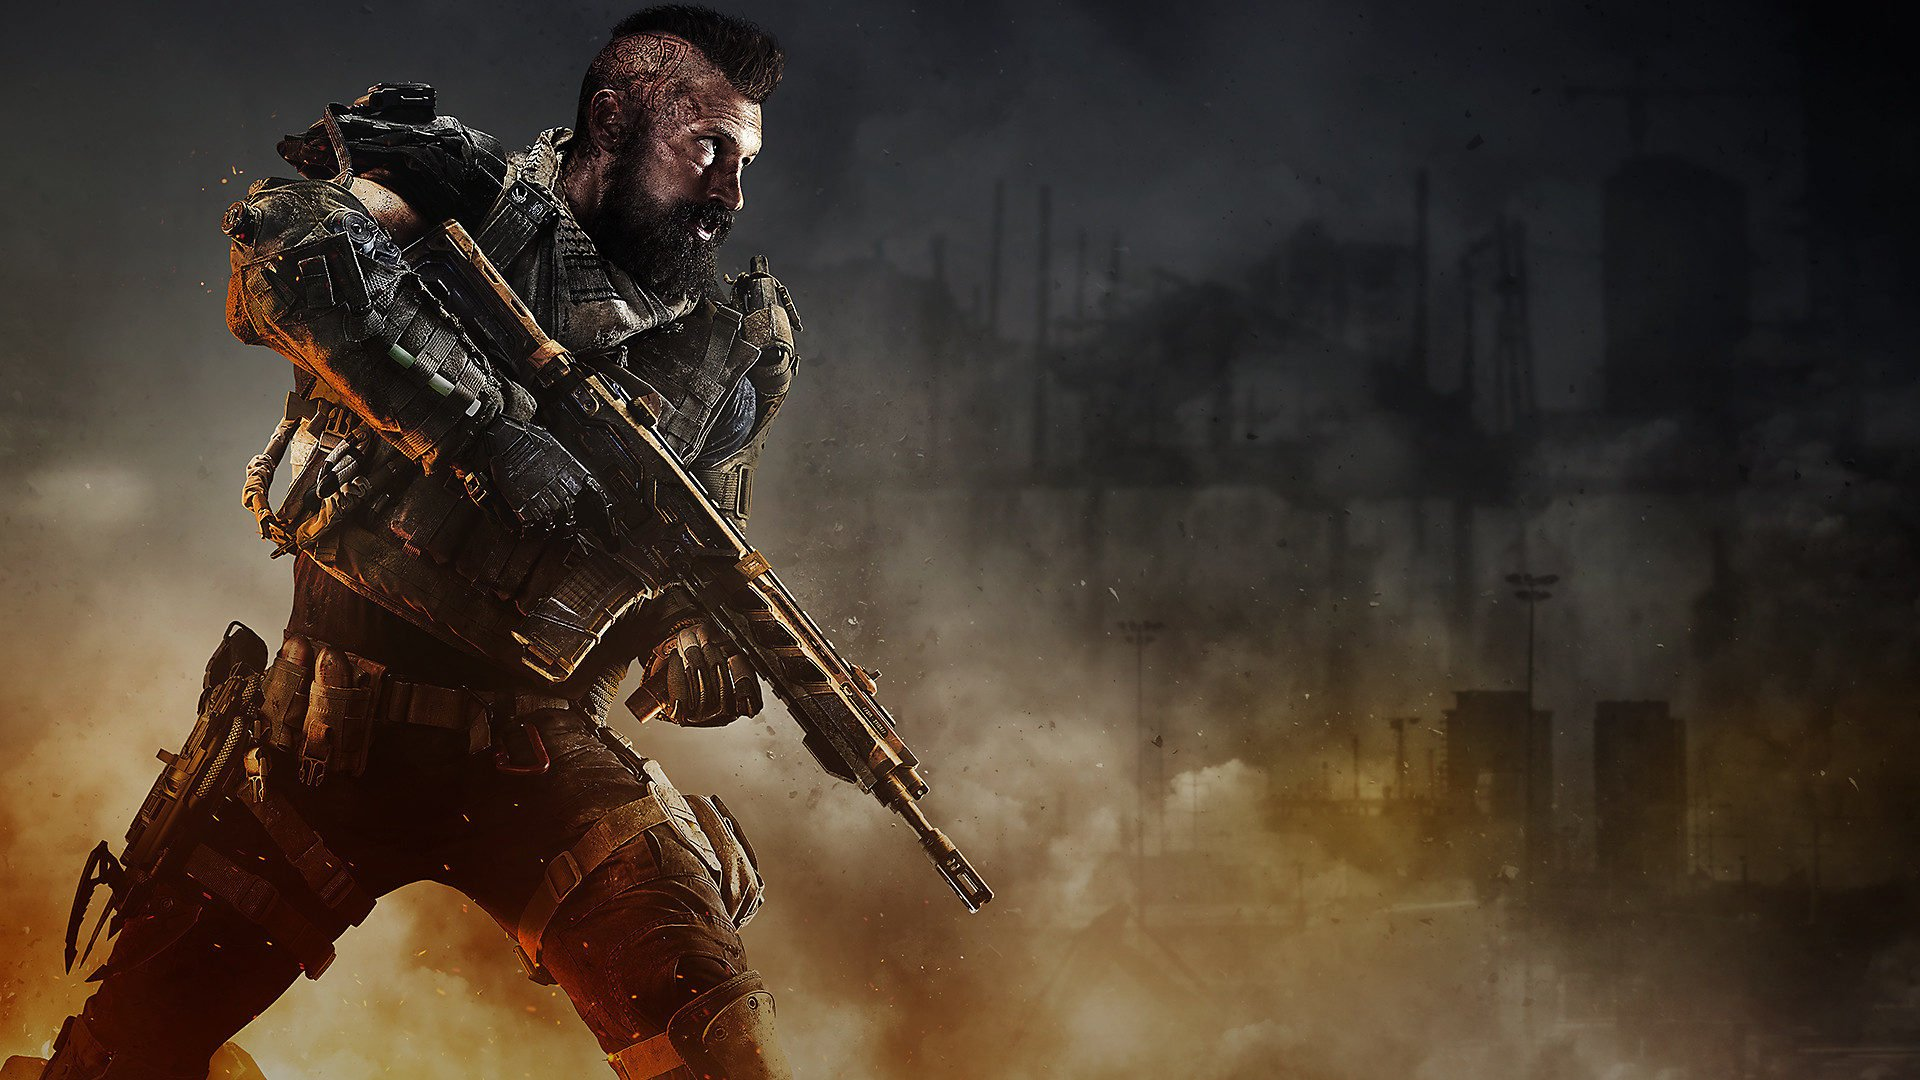 Call of Duty 2020 Will Reportedly Return to the Black Ops Series